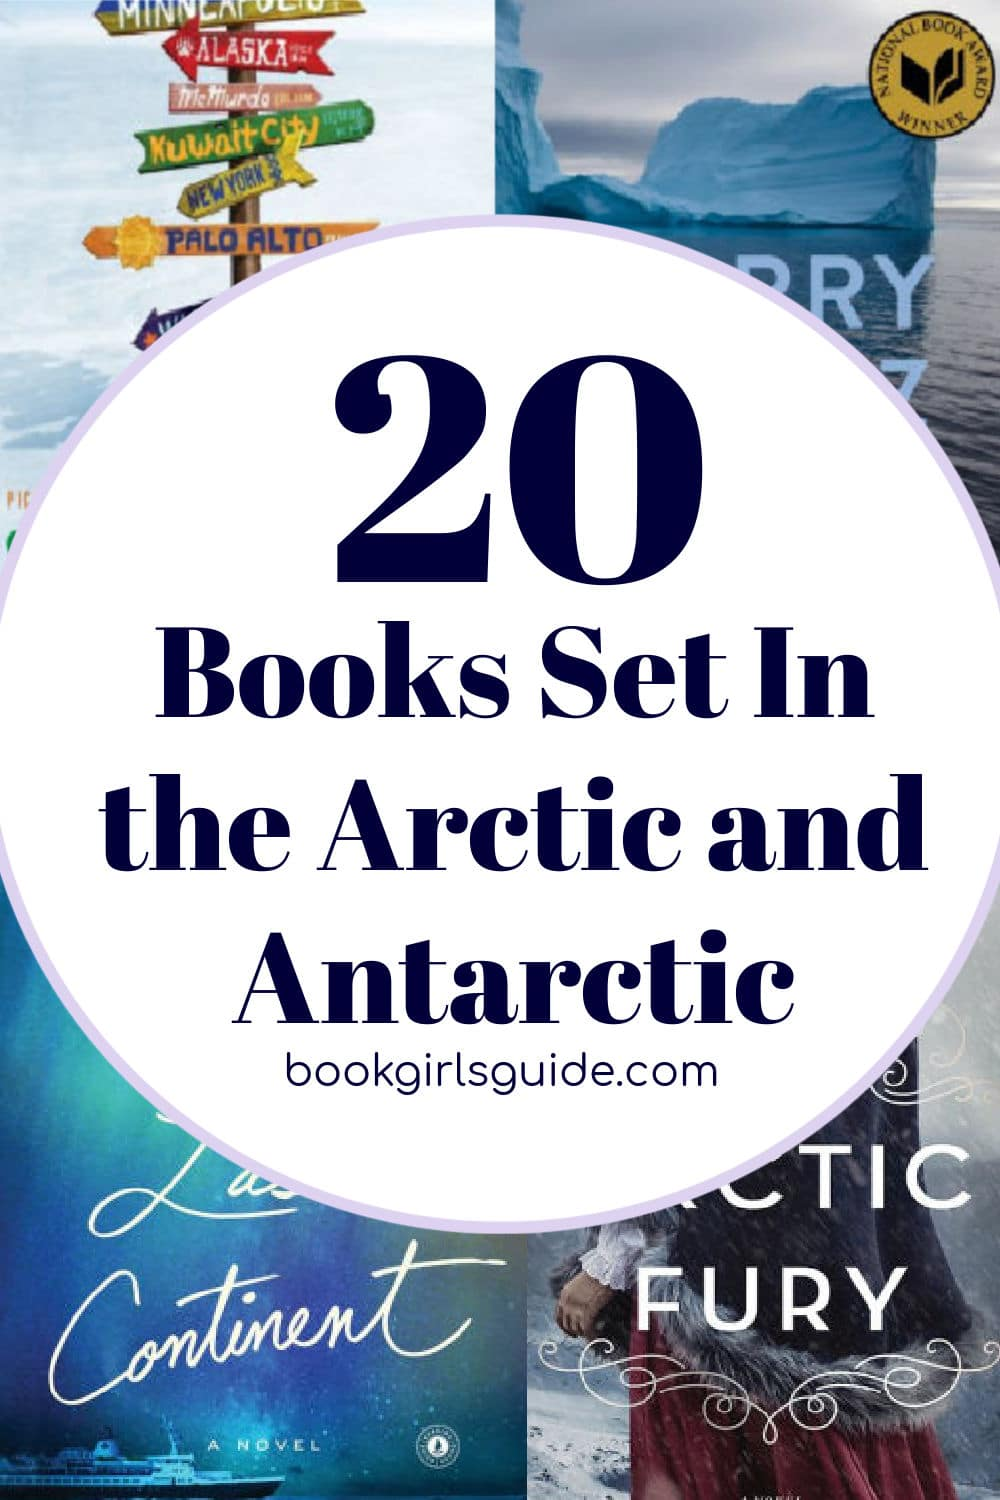 Text over book covers - 20 Books Set in the arctic and Antarctic